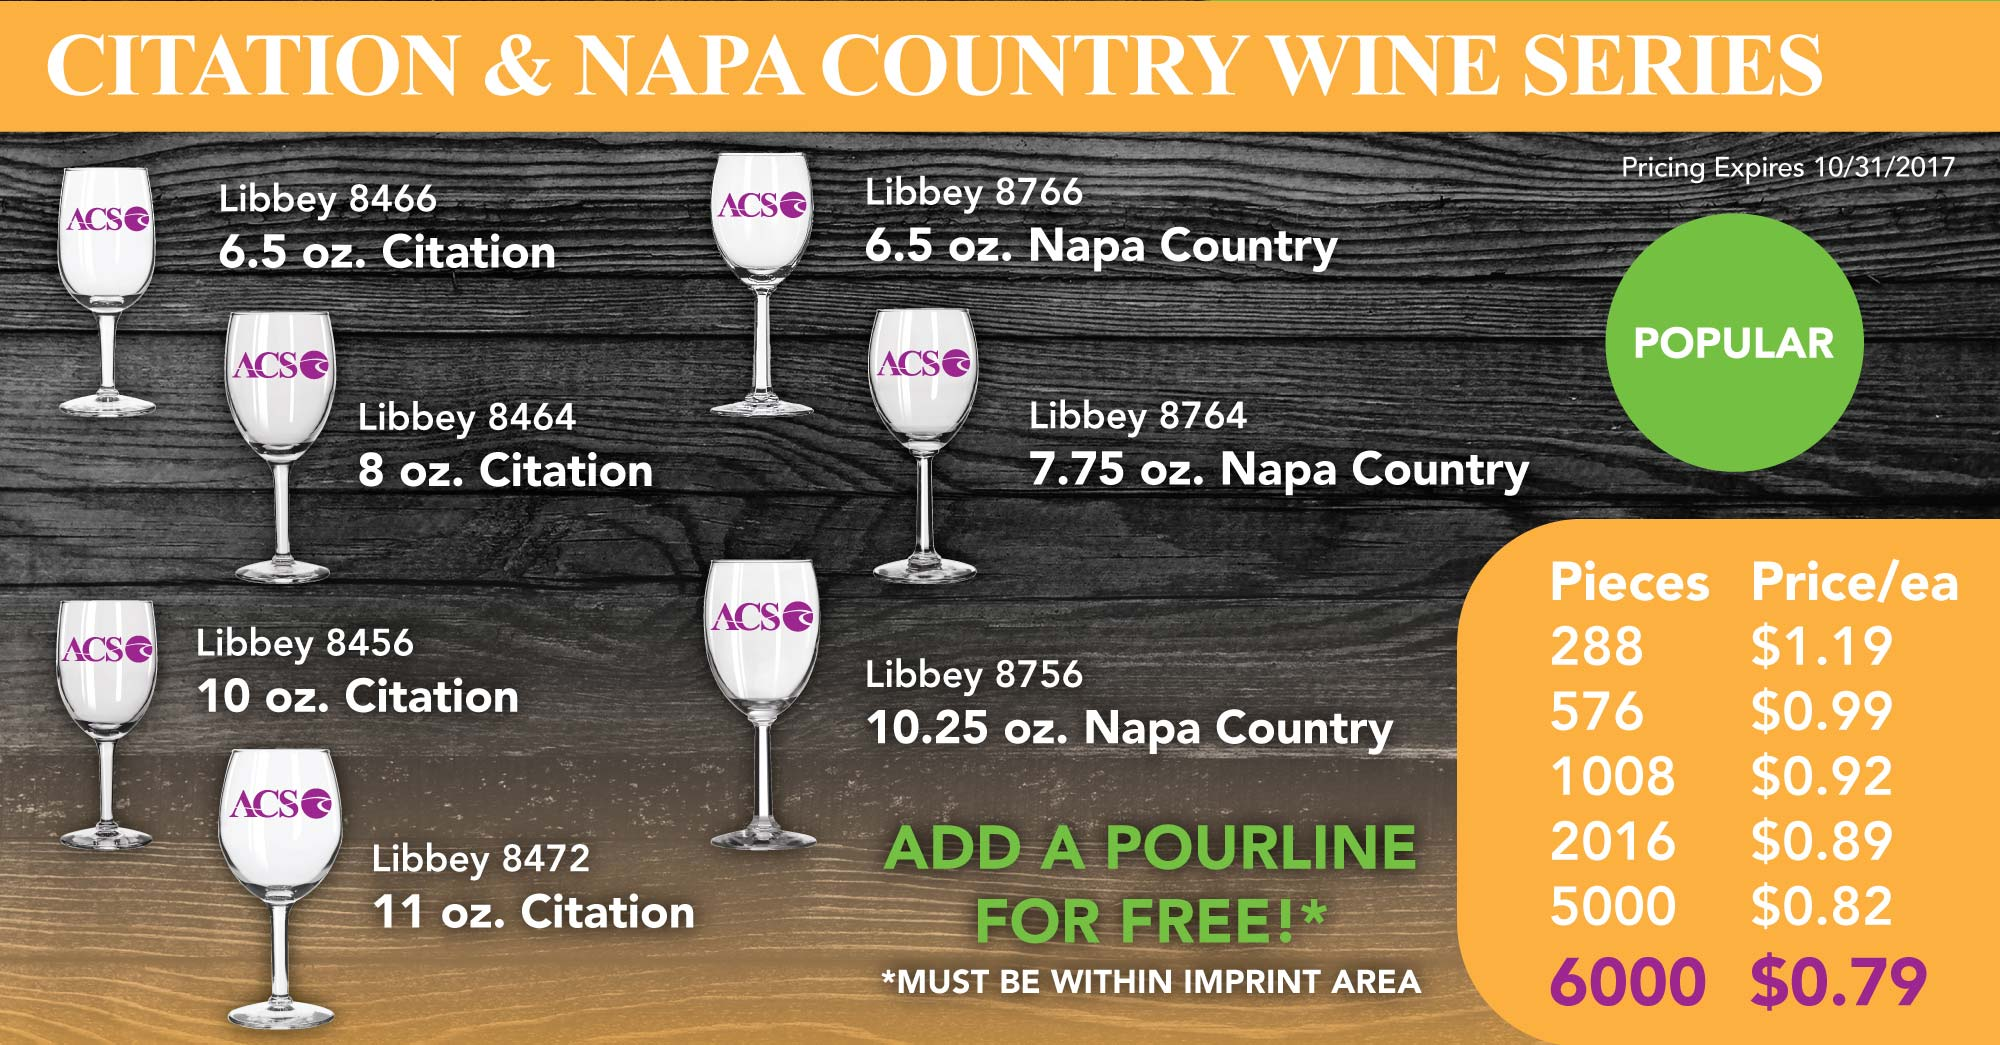 CITATION & NAPA COUNTRY WINE GLASSES